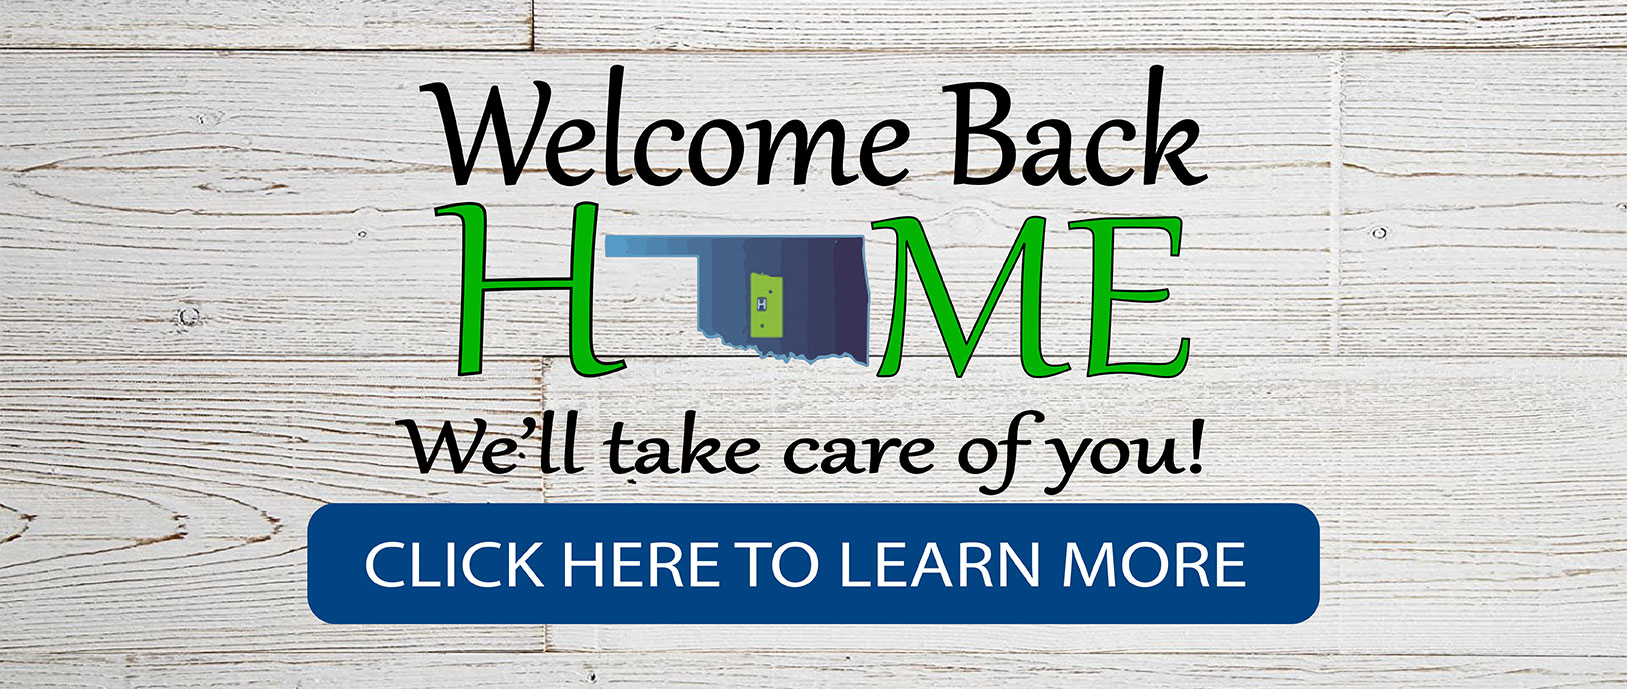 Home. We'll take care of you! Click here to learn more.